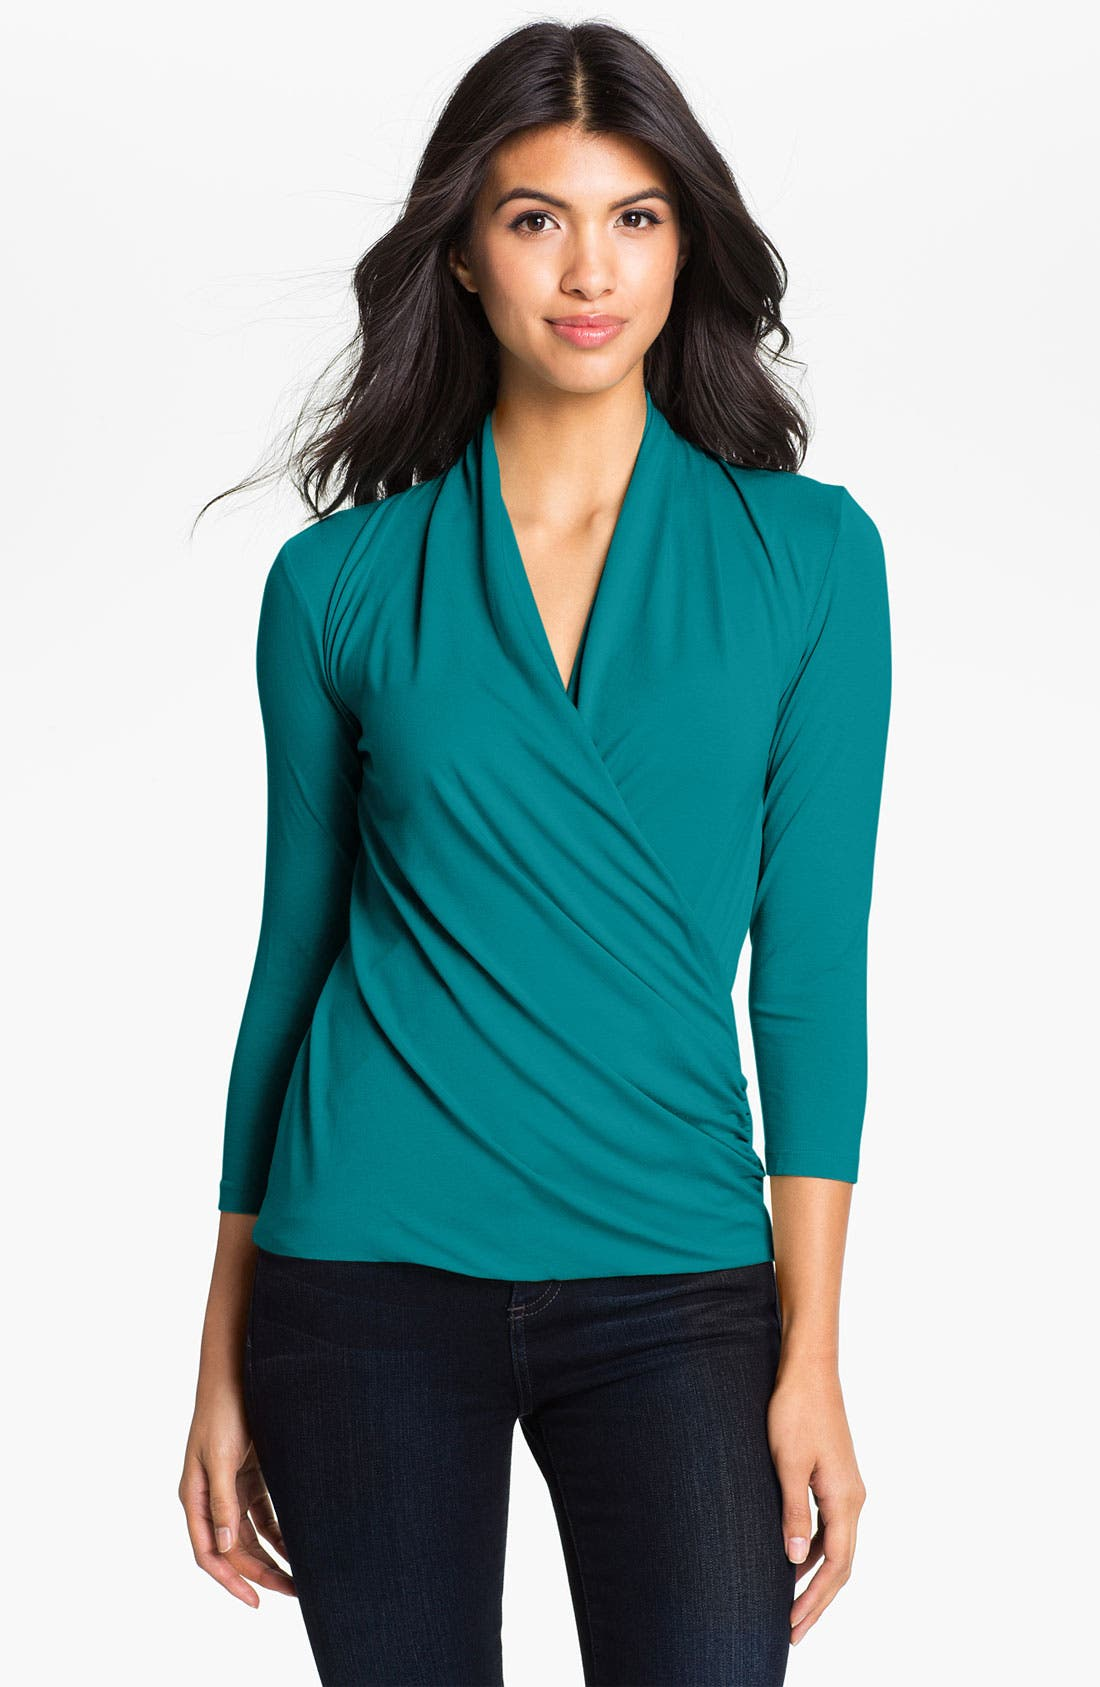 Alternate Image 1 Selected - Vince Camuto Surplice Top